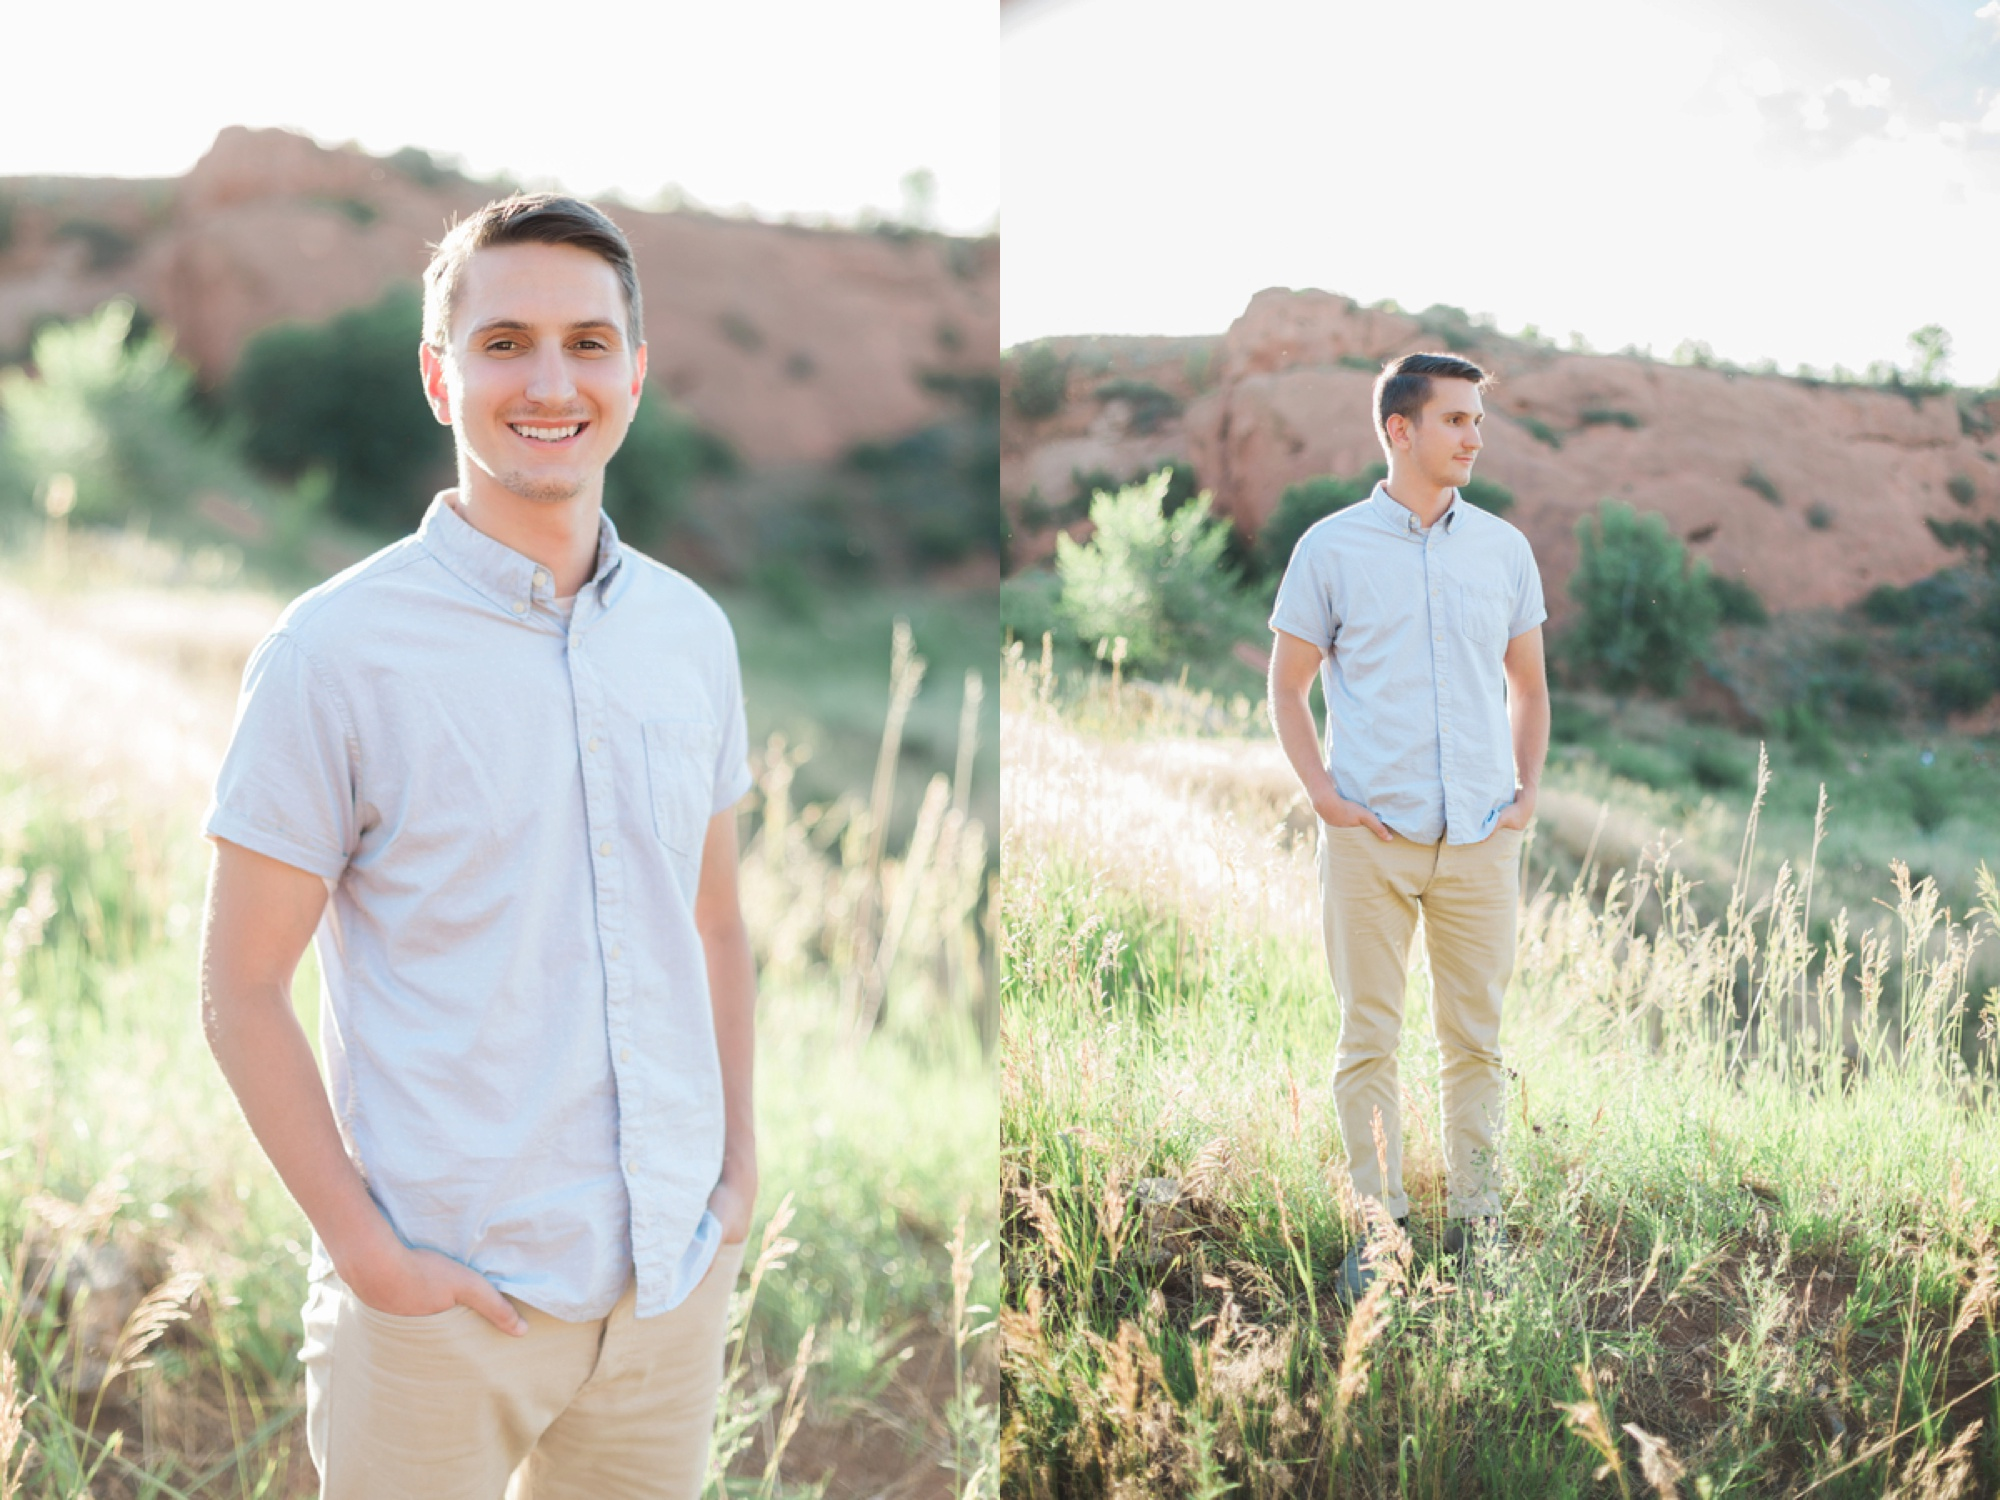 engagement picture ideas, what to wear for engagement pictures, Red Rock Canyon Engagement pictures,